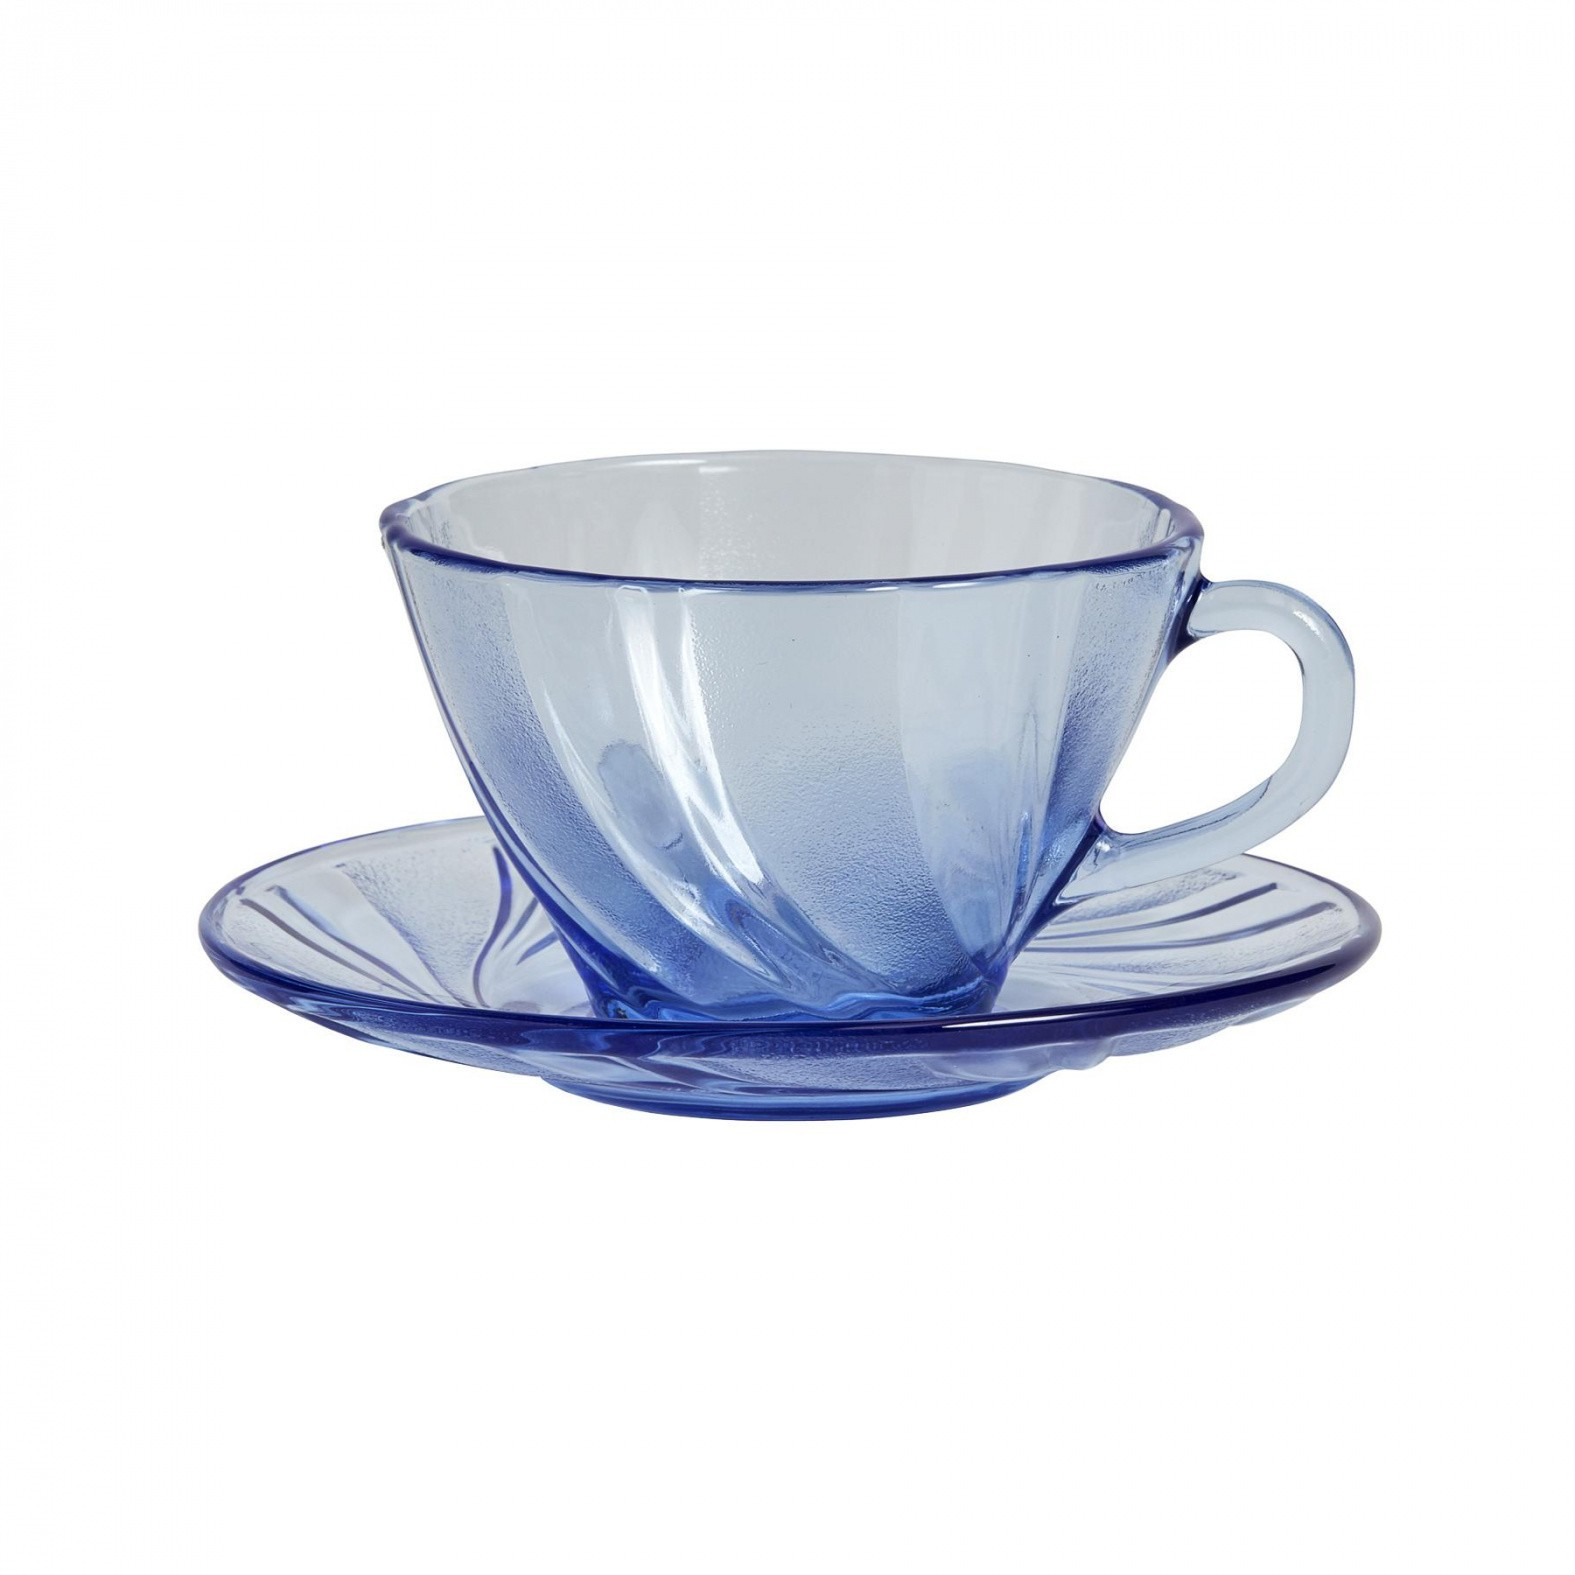 Hay French Coffee Cup With Saucer Set Of 6